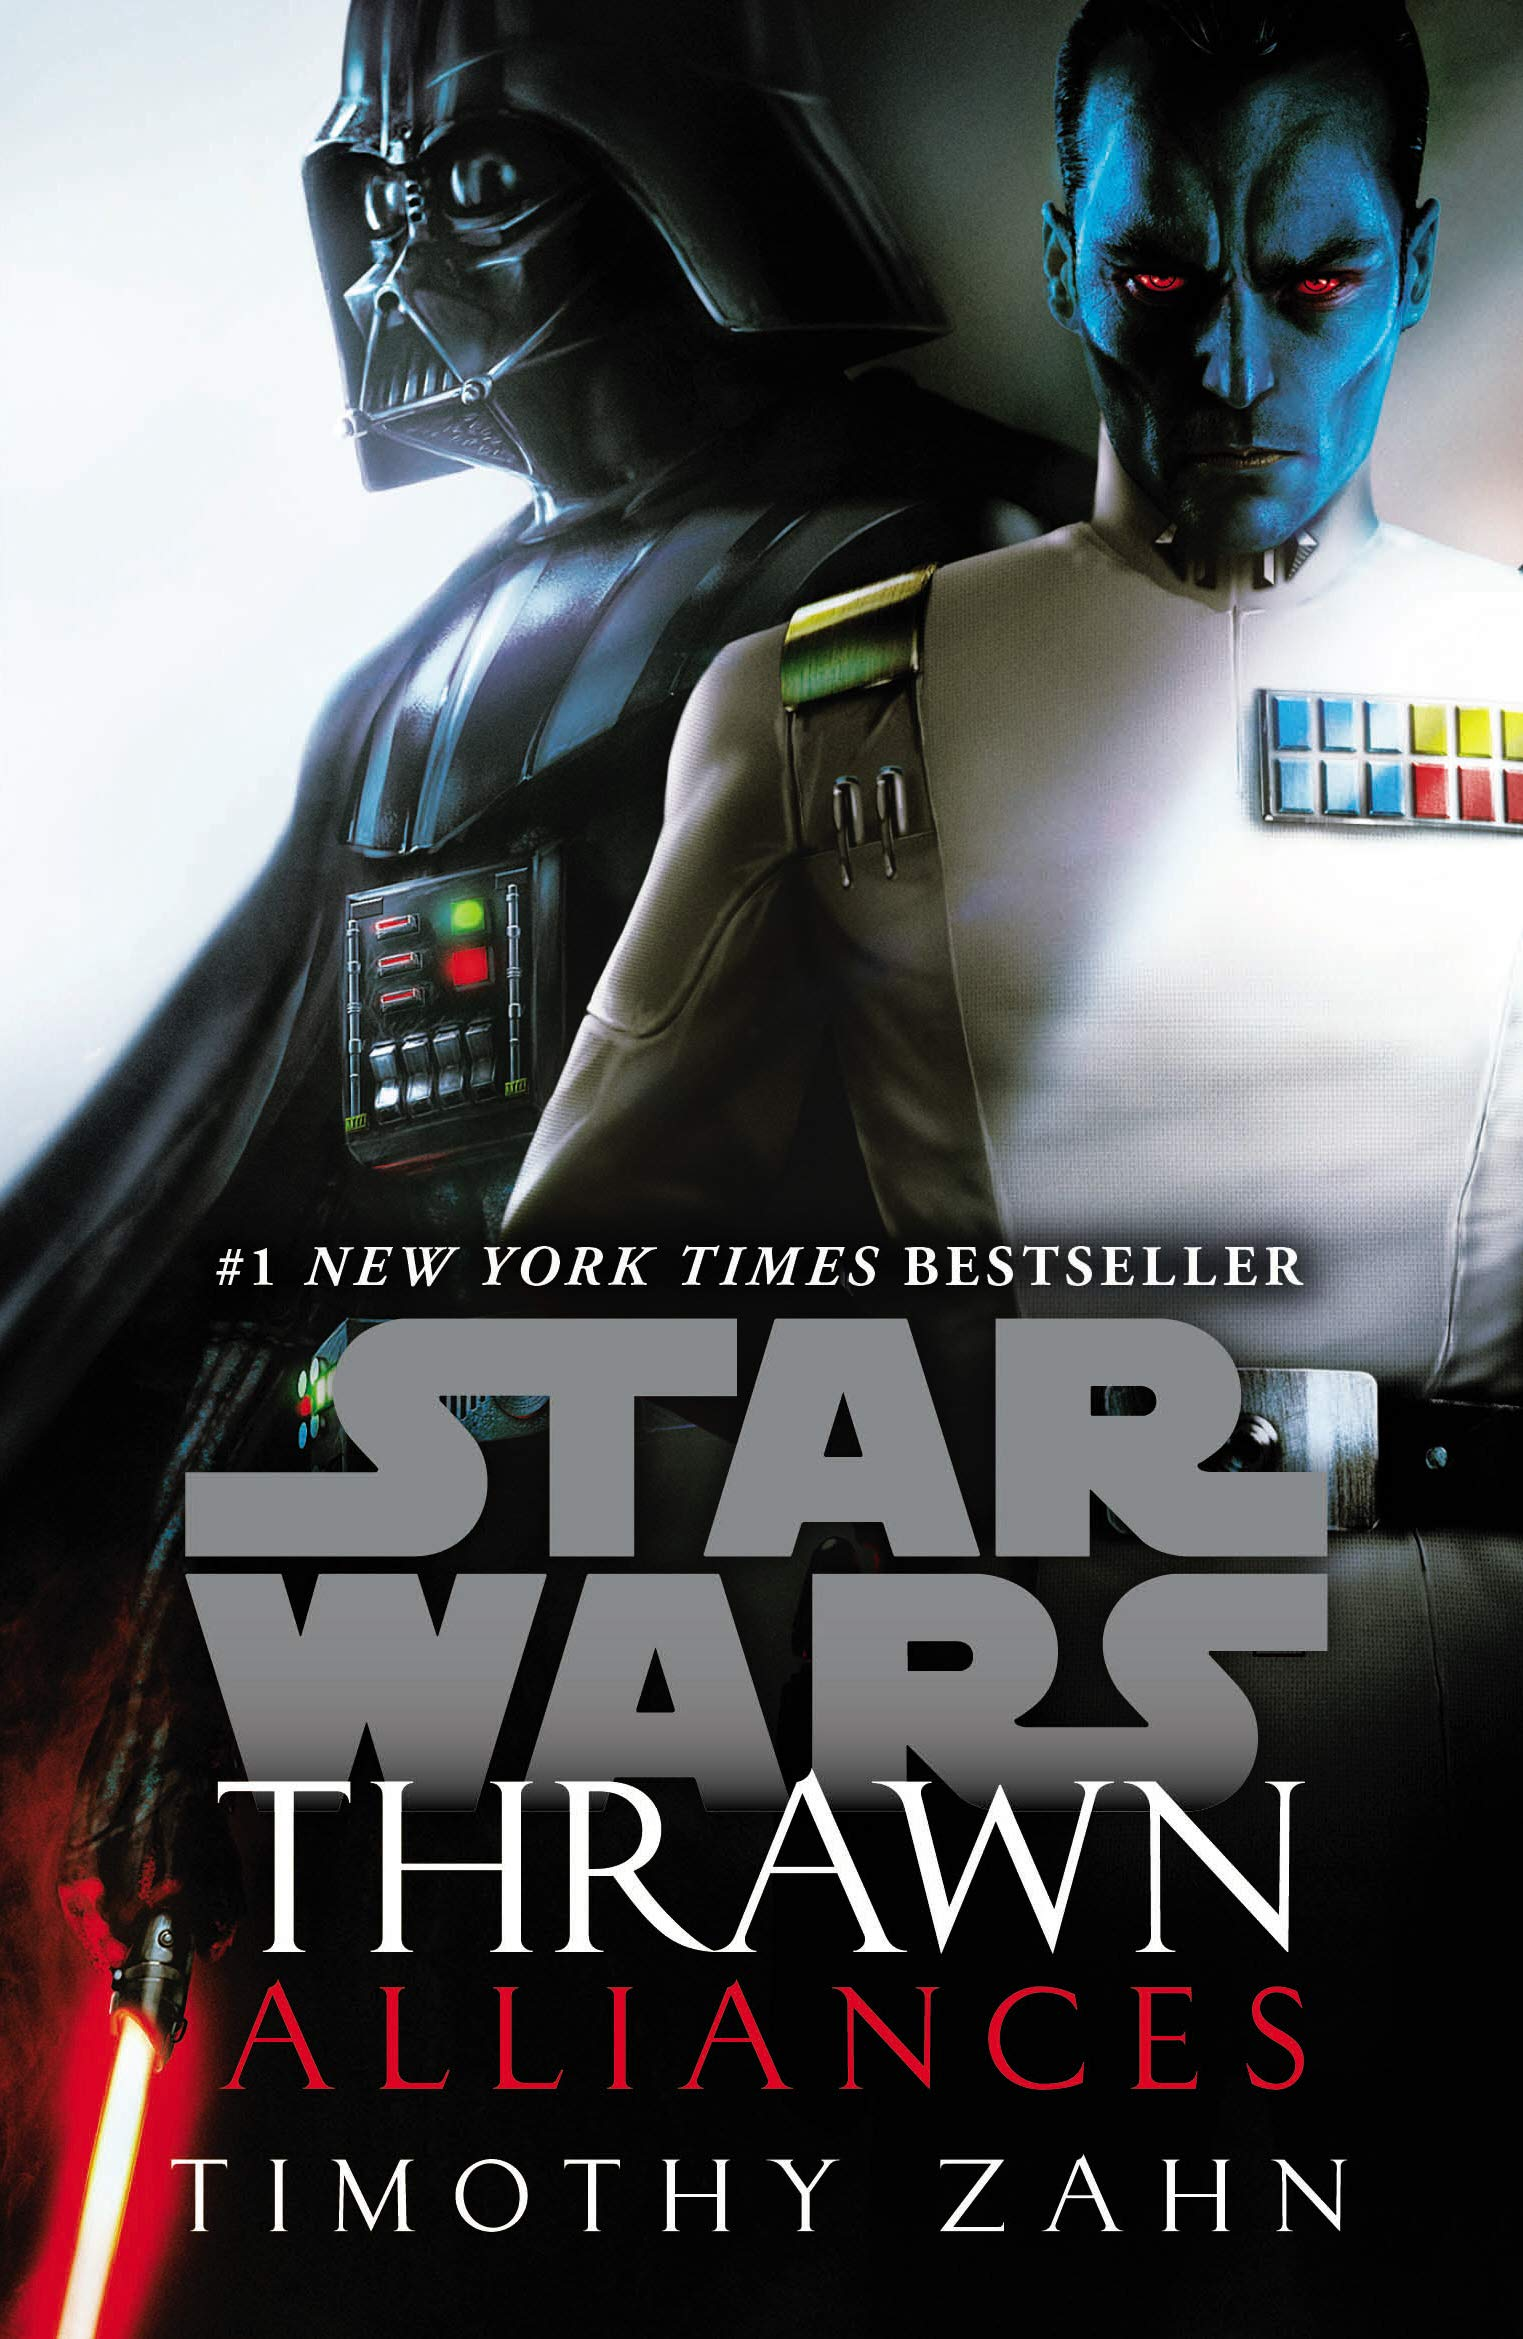 Star Wars Thrawn: Alliances (paperback)